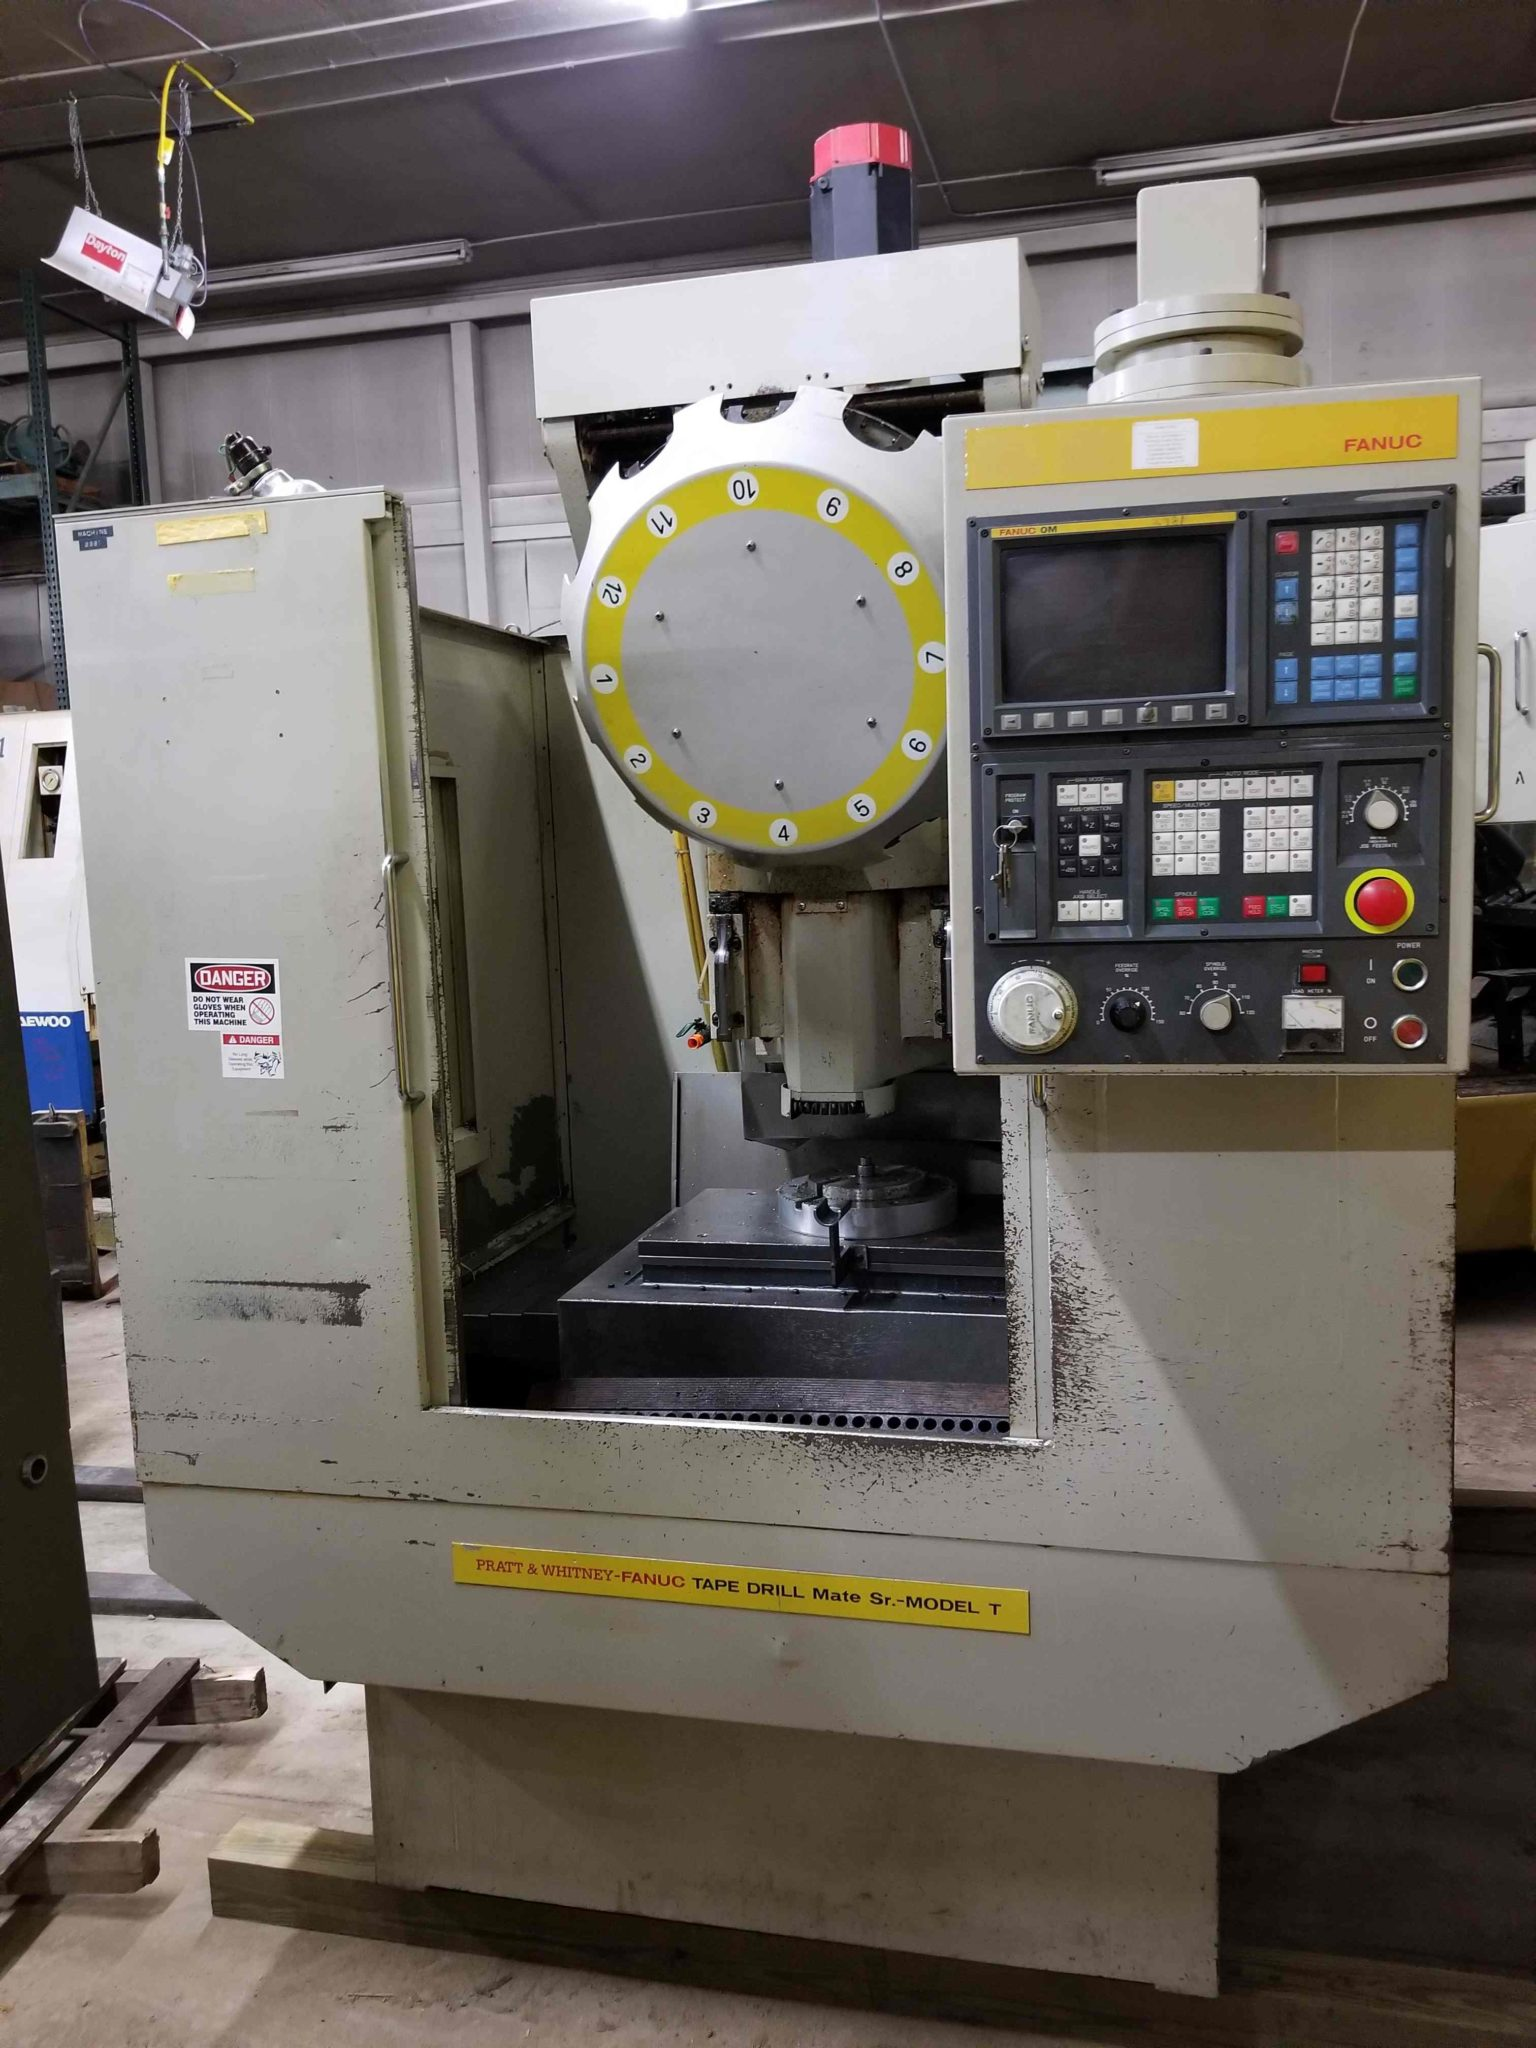 Fanuc Drill Tapping Milling CNC Machine For Sale | Call 616